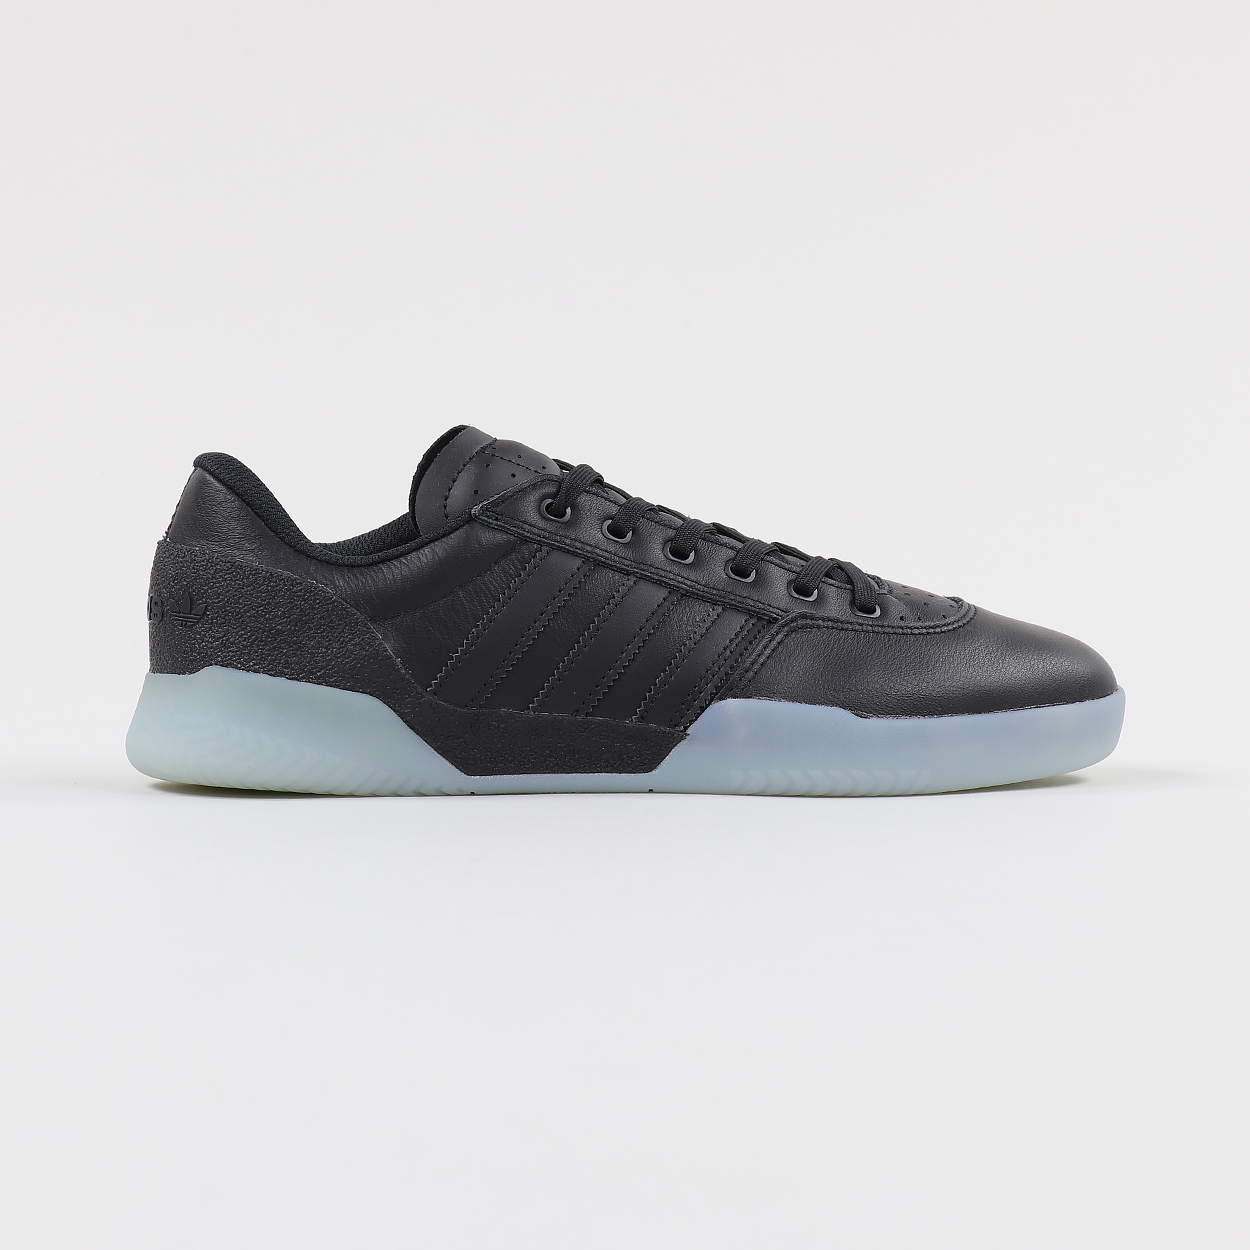 NEW ADIDAS ORIGINALS Men's City Cup Breathable Trainers Black